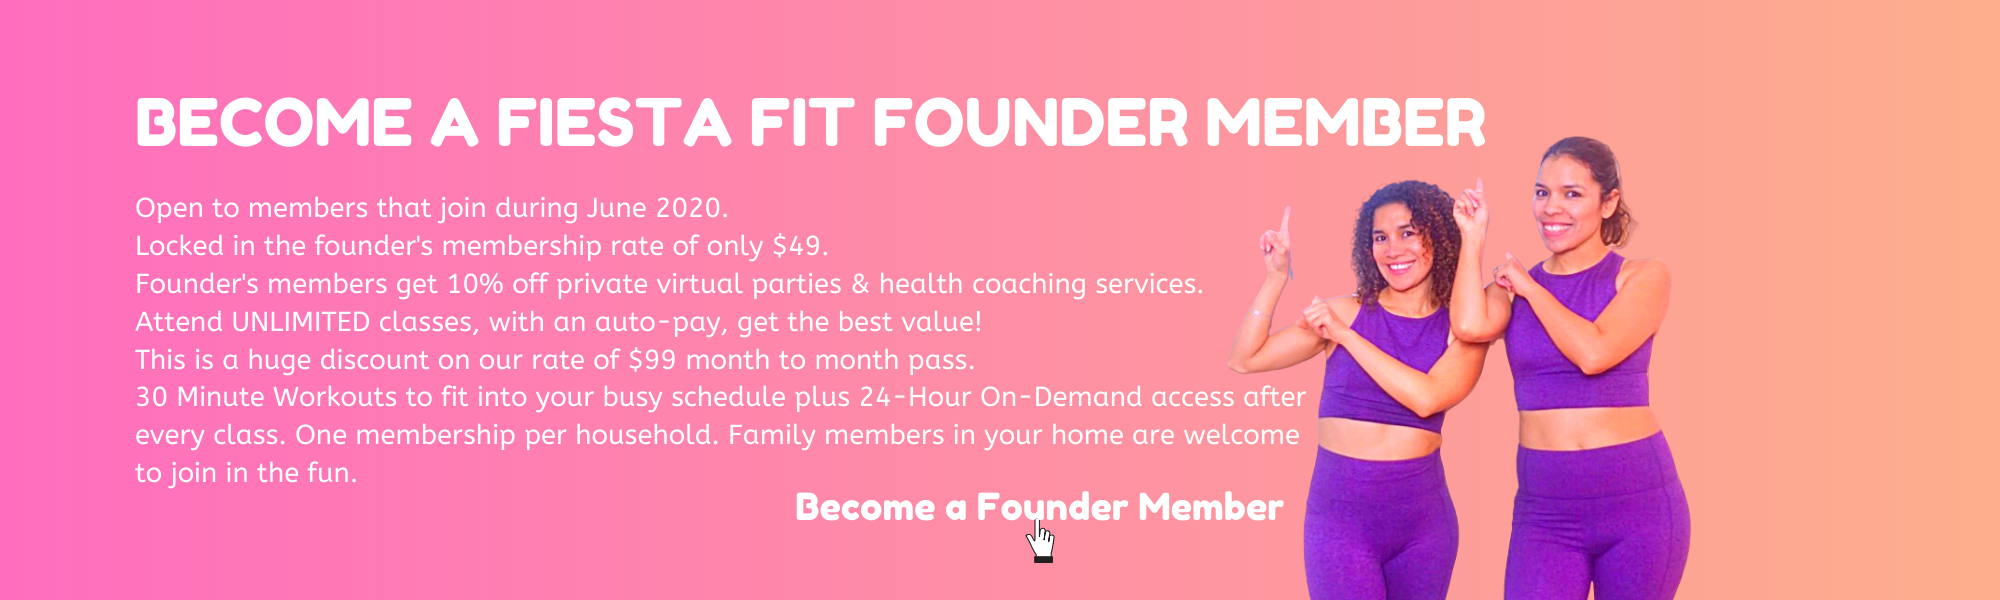 Fiesta Fit Founder's Membership